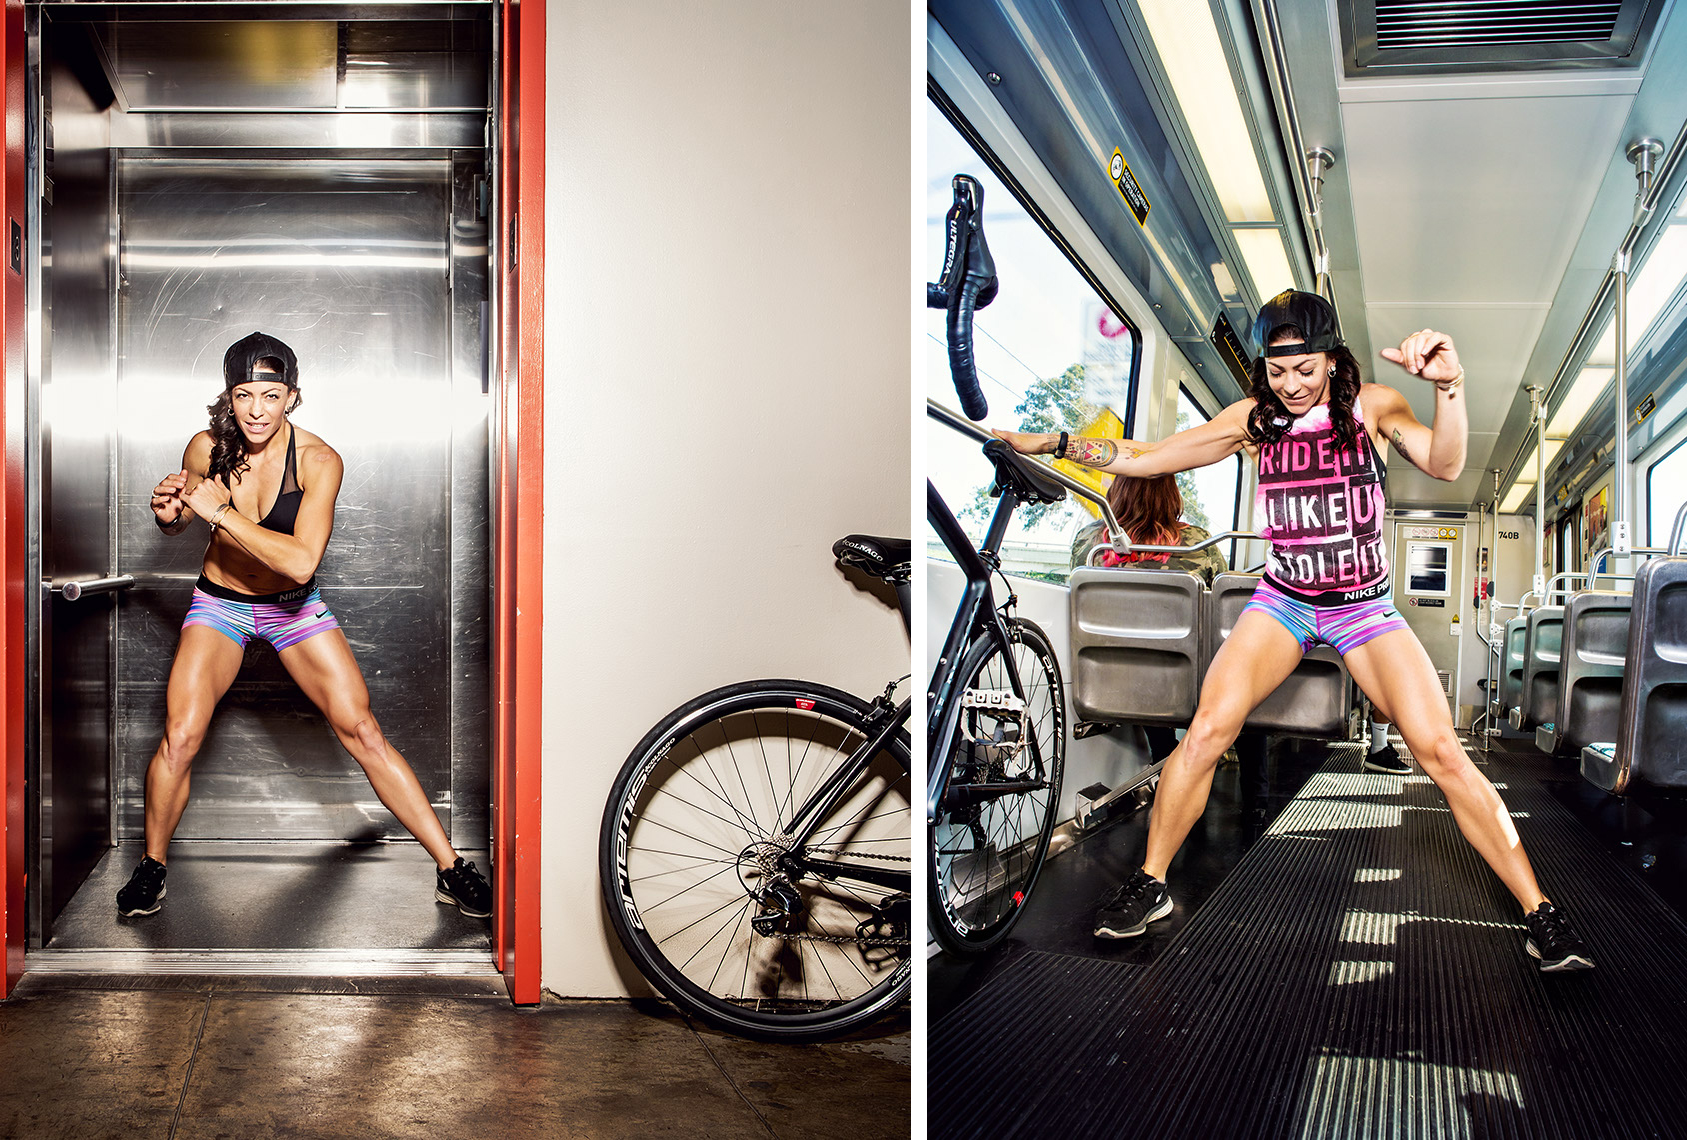 Glasshouse Assignment - Christina Gandolfo - Portrait Photography - Bicycling